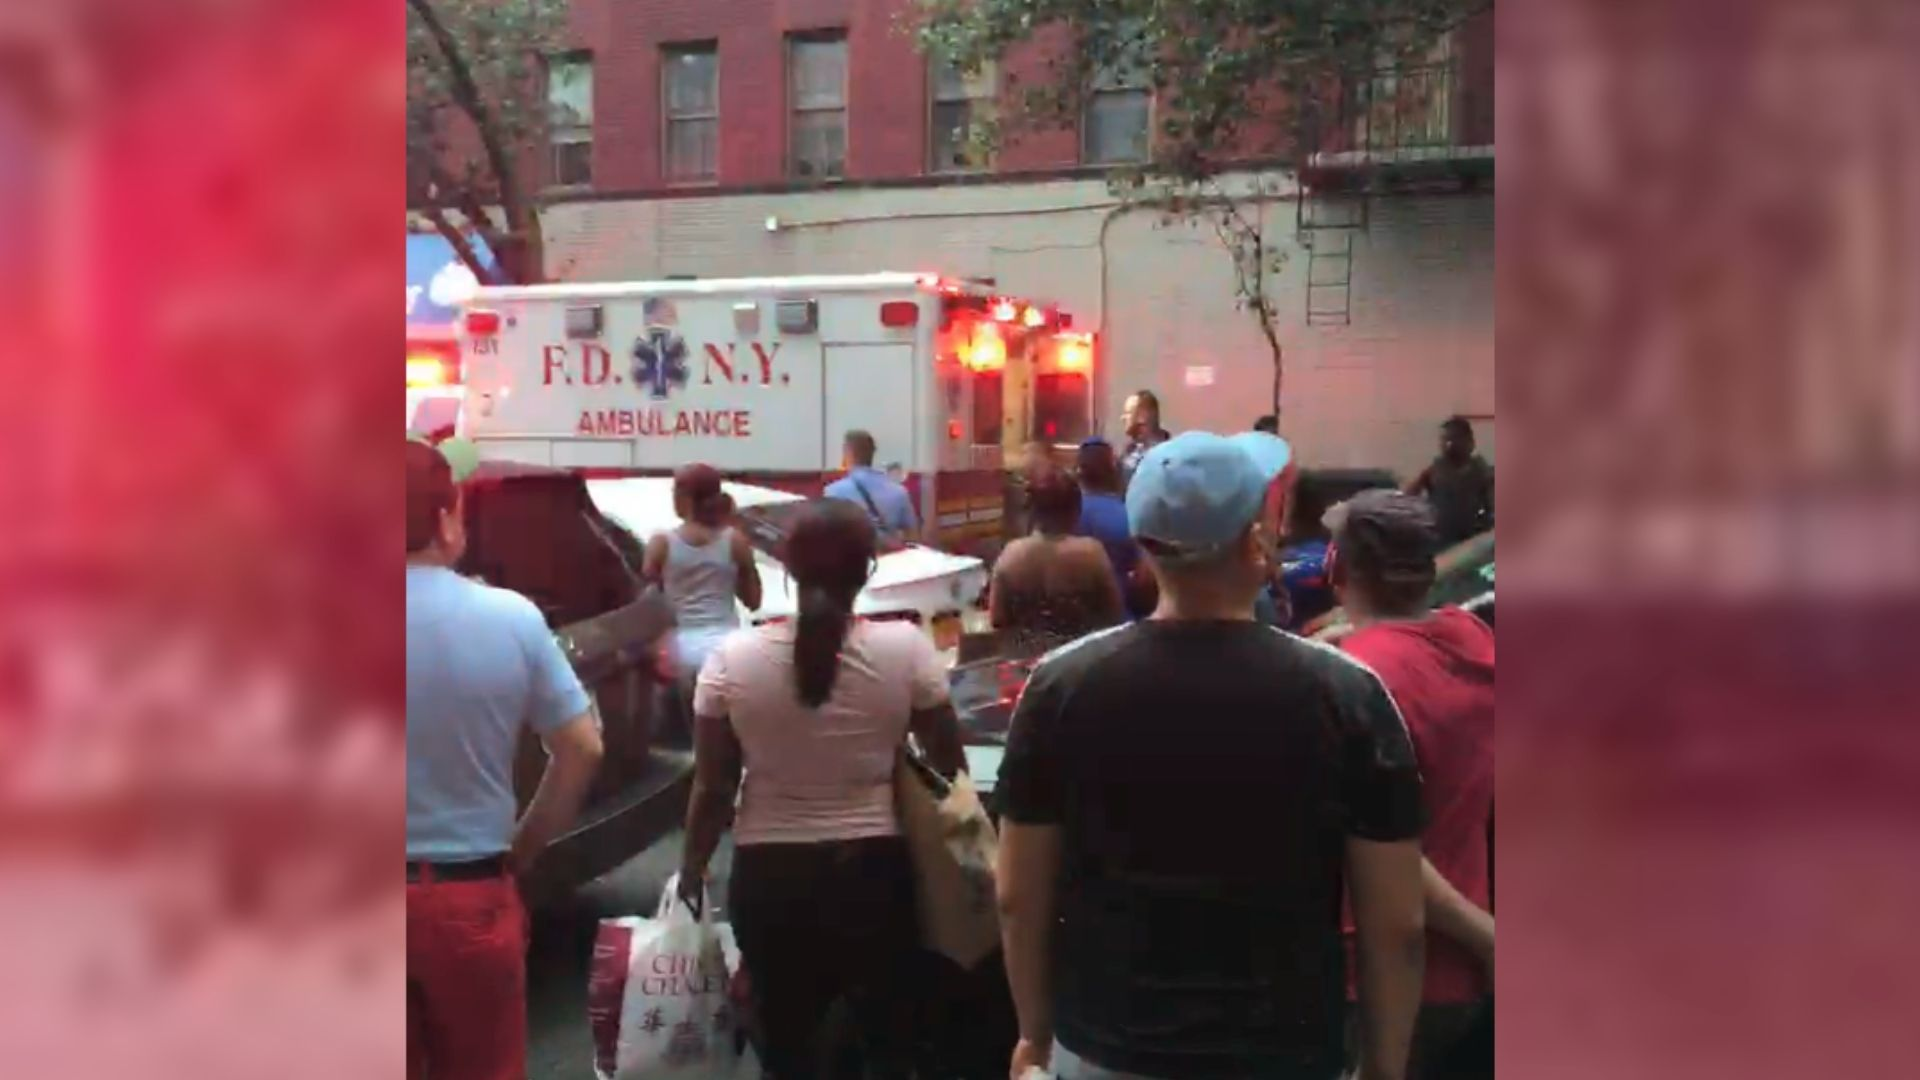 EMS on scene after 20-year-old fatally shot in the Bronx